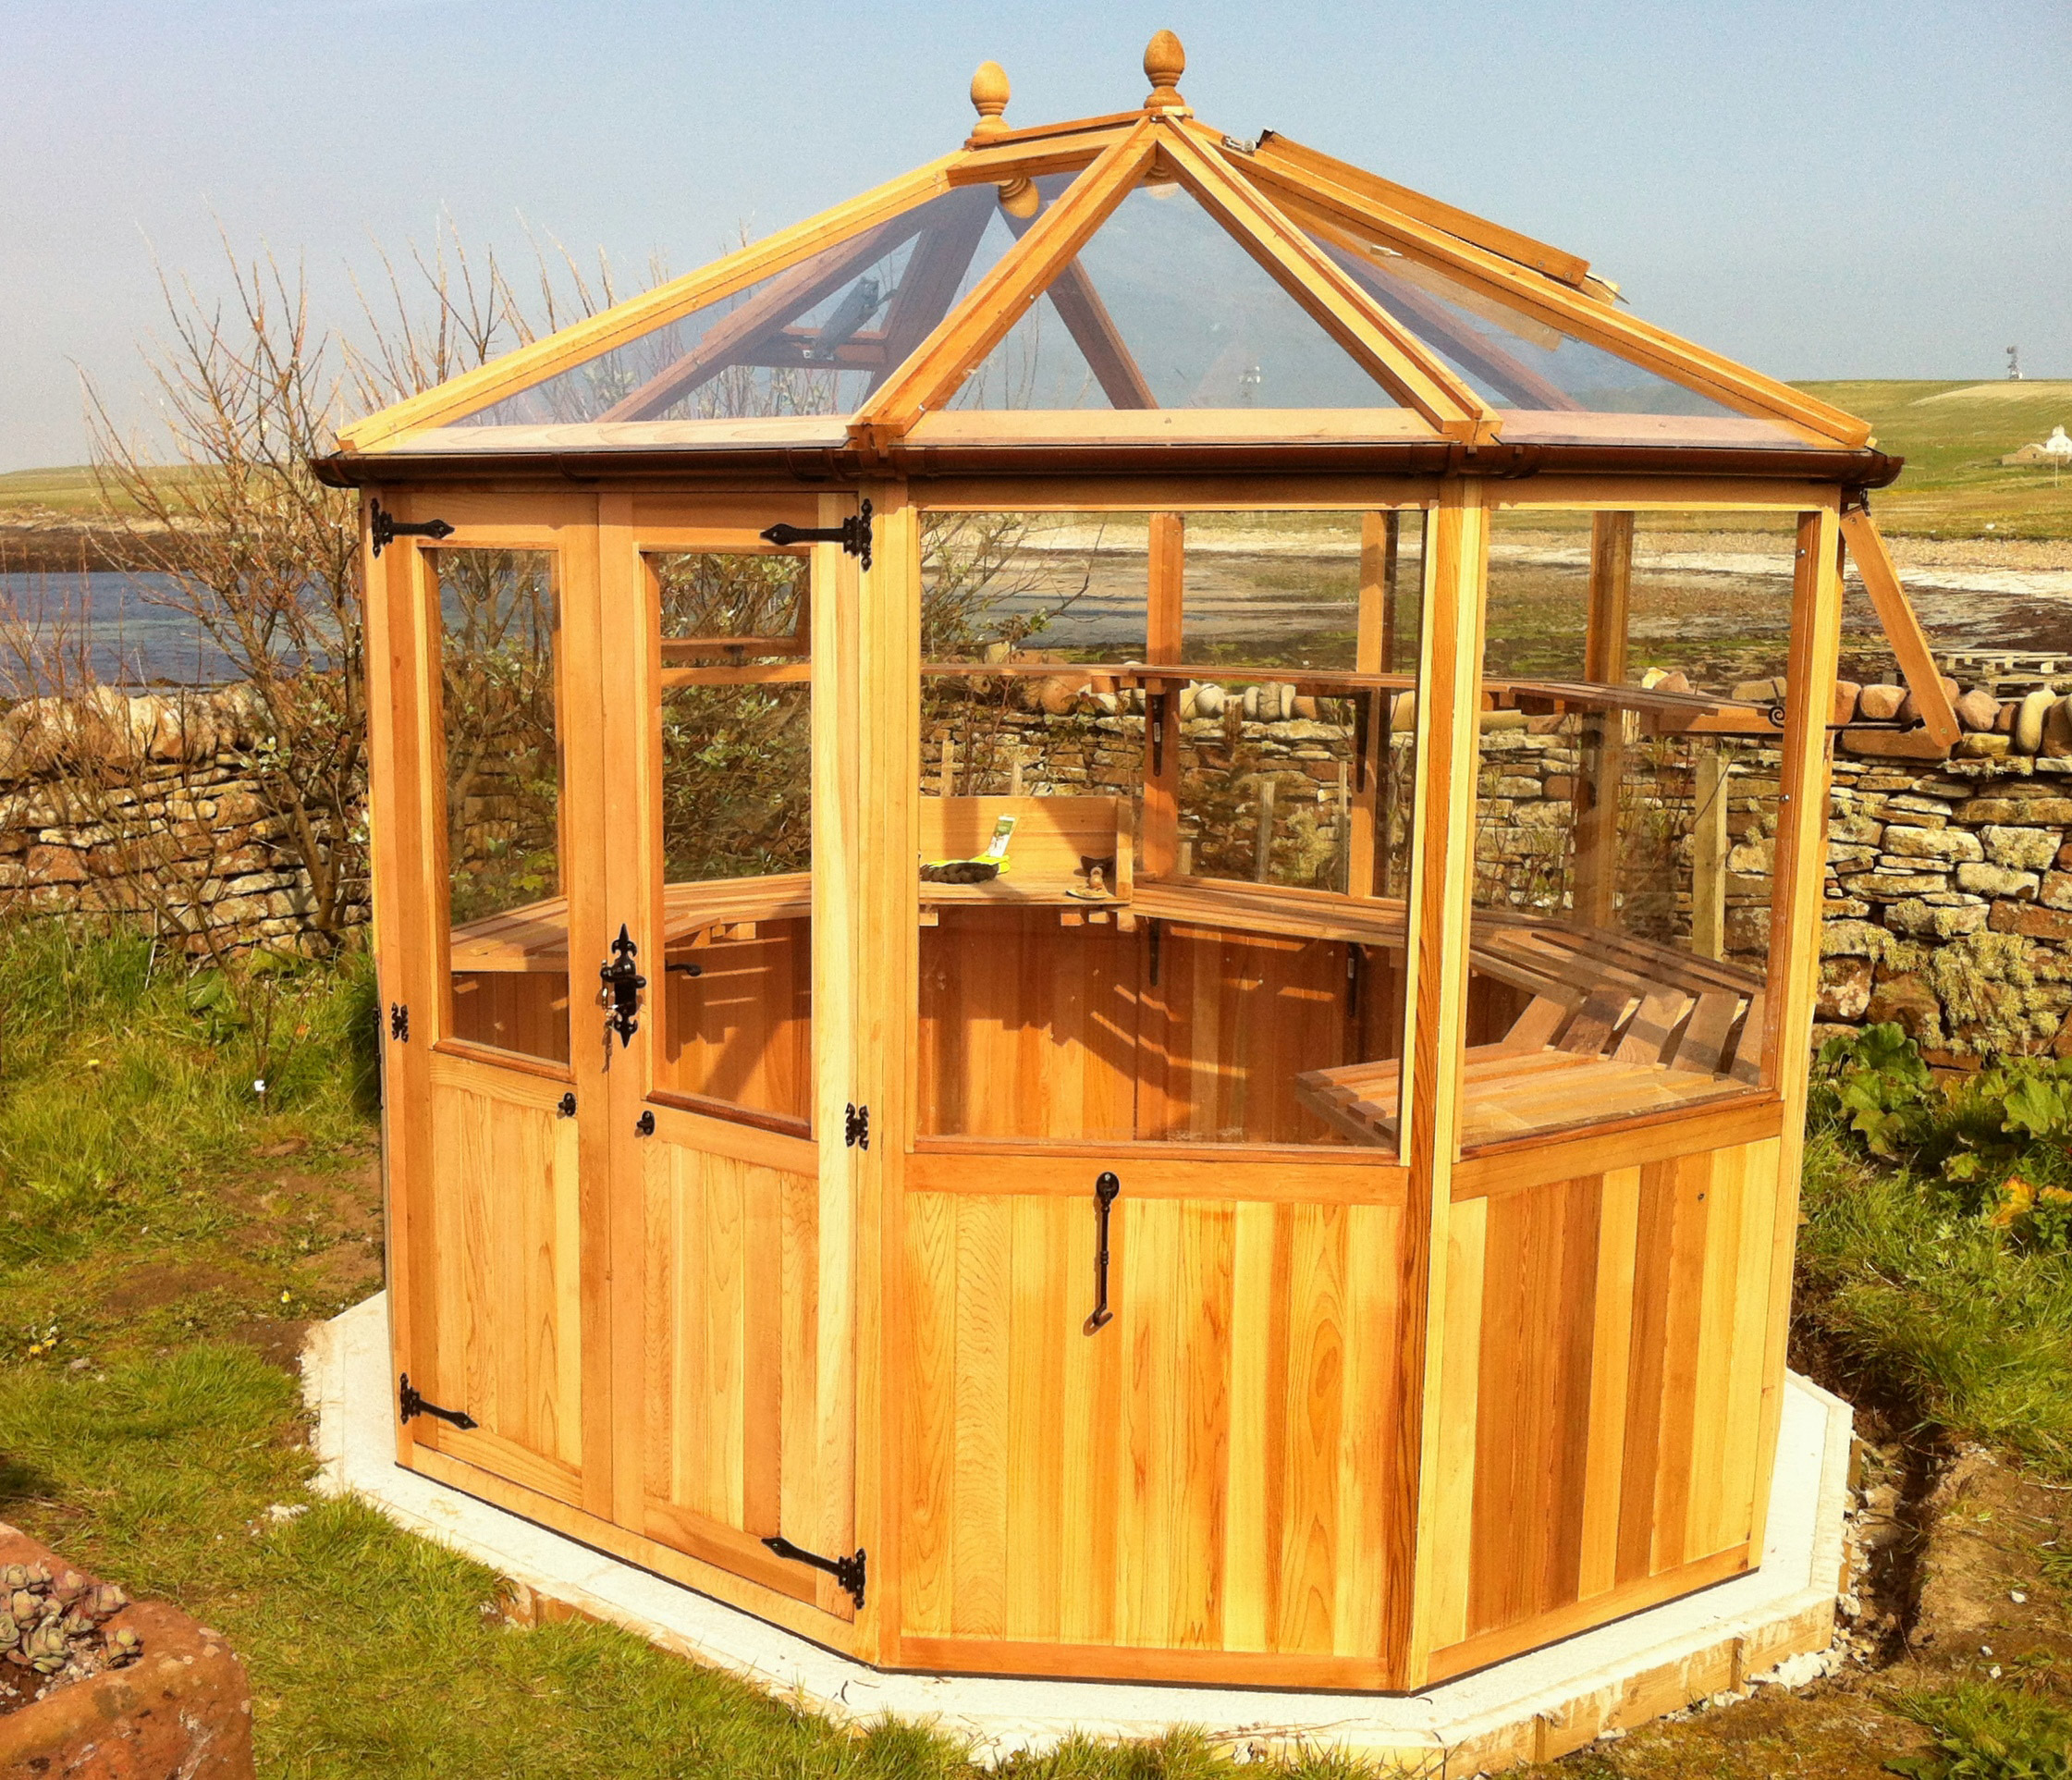 Stramshall Octagonal Cedar Greenhouse Installed